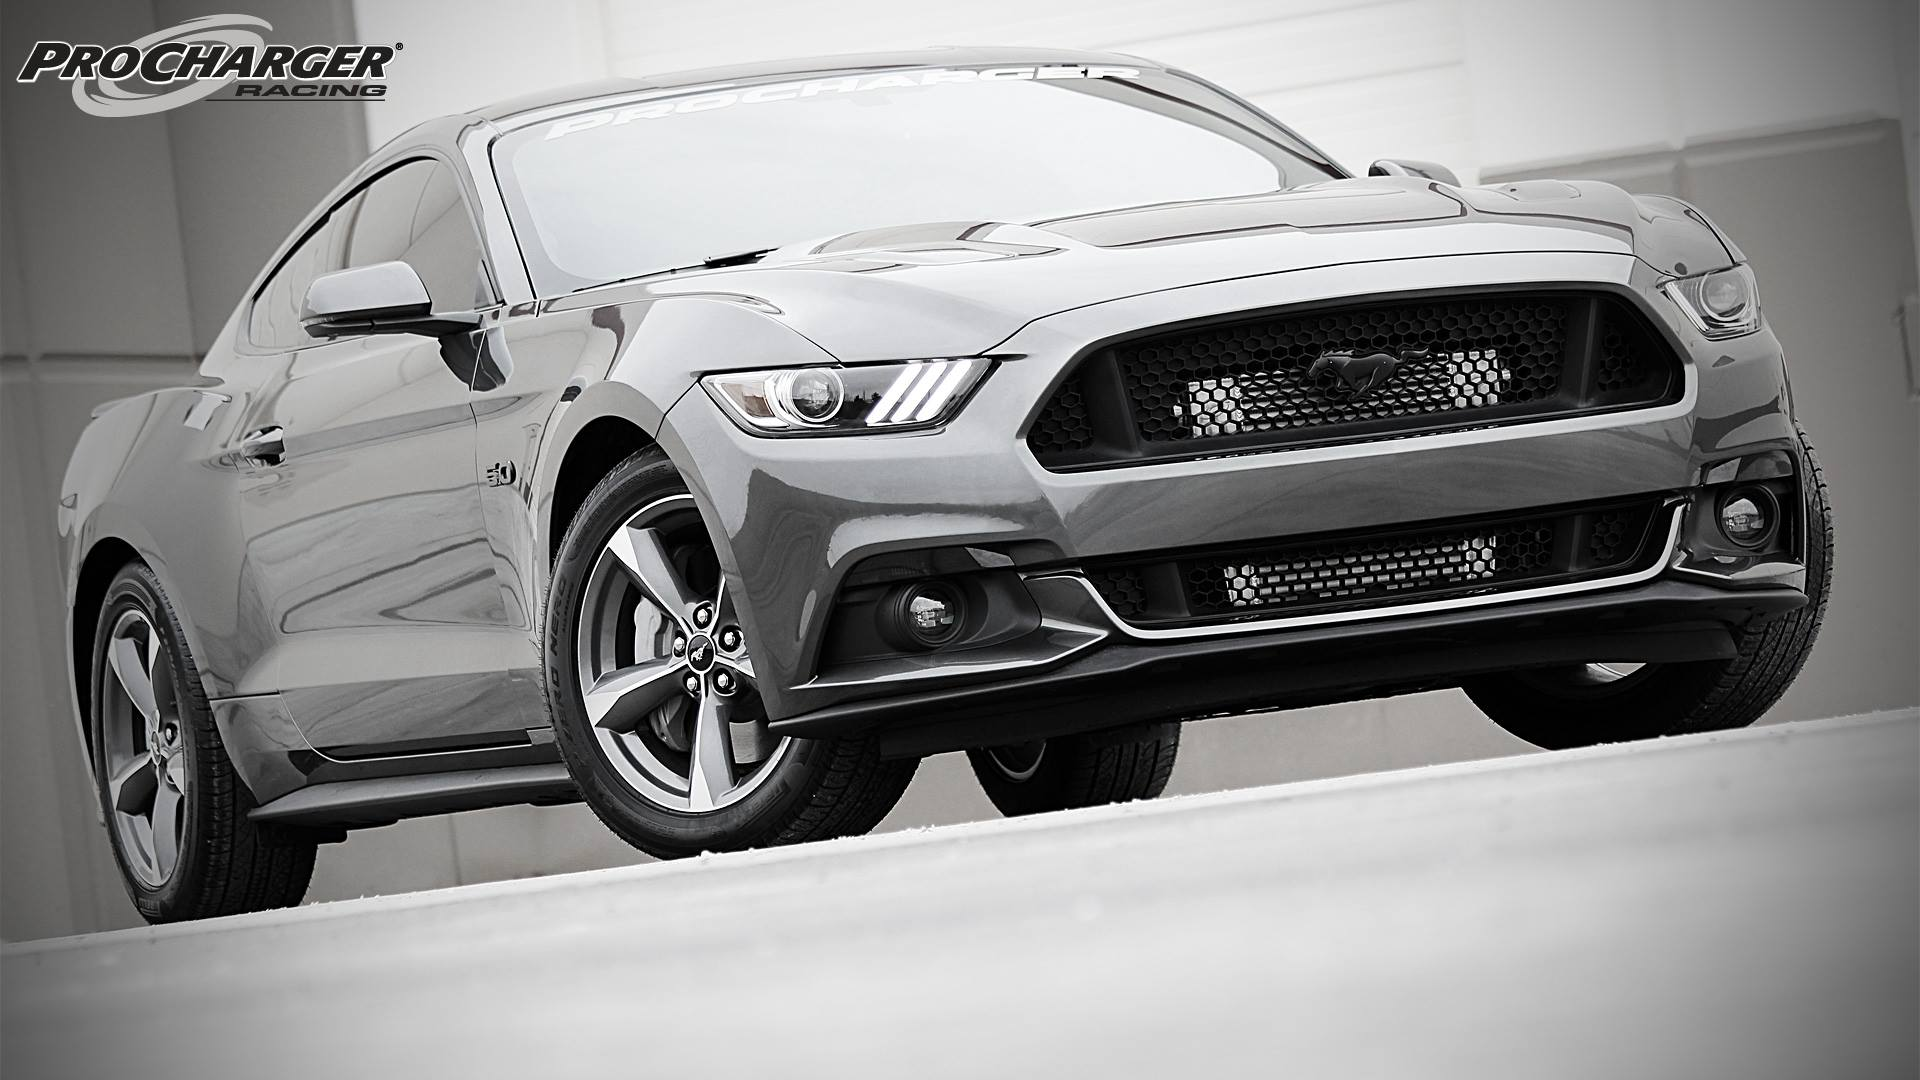 2015 Ford Mustang Supercharger System from ProCharger ... 2015 Police Charger